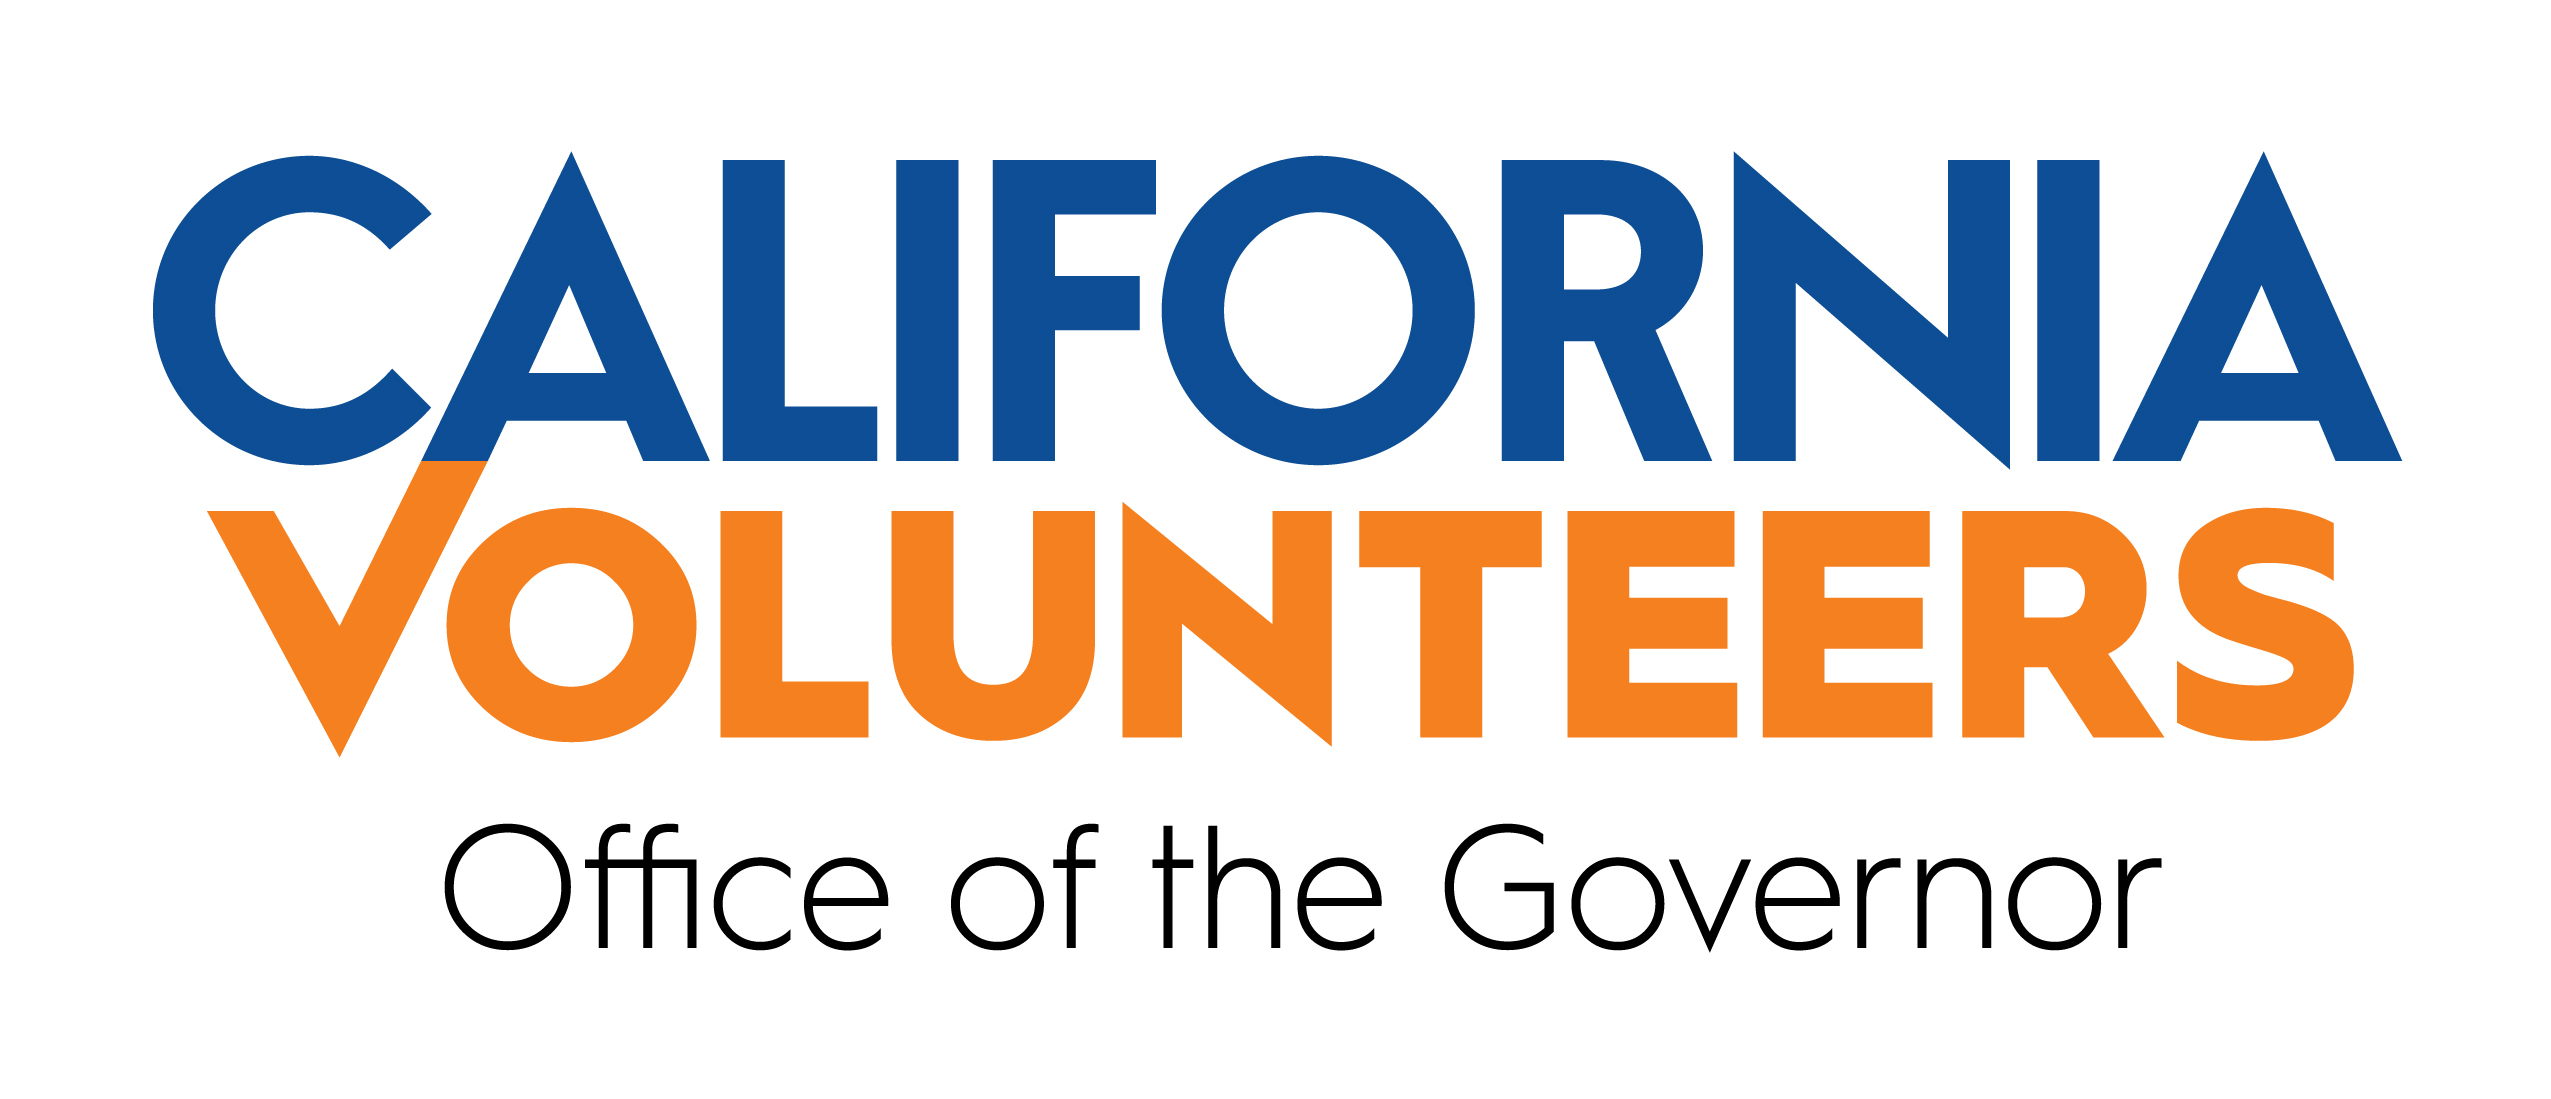 California Volunteers logo. Logo is only text, reading California Volunteers, Office of the Governor